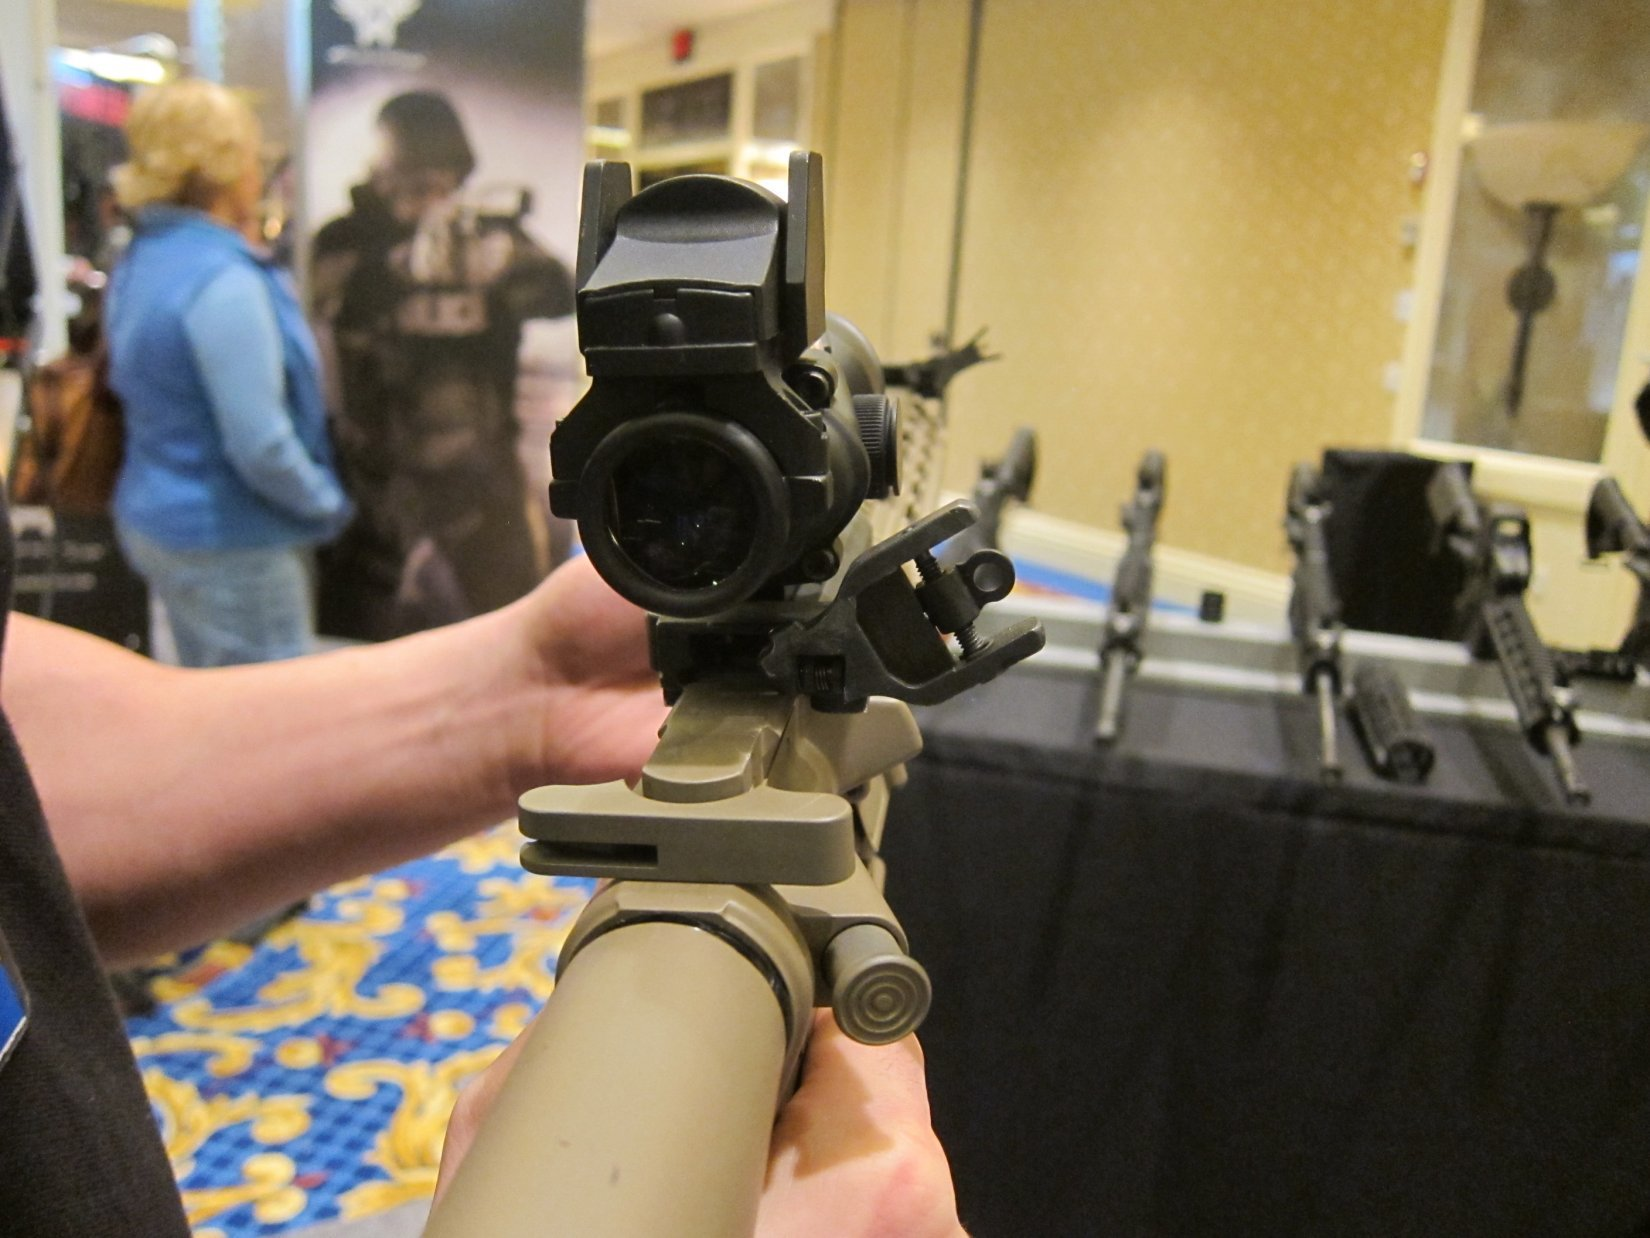 Diamondhead USA 45 Degree Offset Flip Sights BUIS Back Up Iron Sights for Tactical AR 15 Rifle Carbine SBR Sub Carbines SHOT Show 2012 DefenseReview.com DR 5 Diamondhead USA 45 Degree Offset Flip Sights/BUIS (Back Up Iron Sights) for Tactical AR 15 Rifle/Carbine/SBR/Sub Carbines